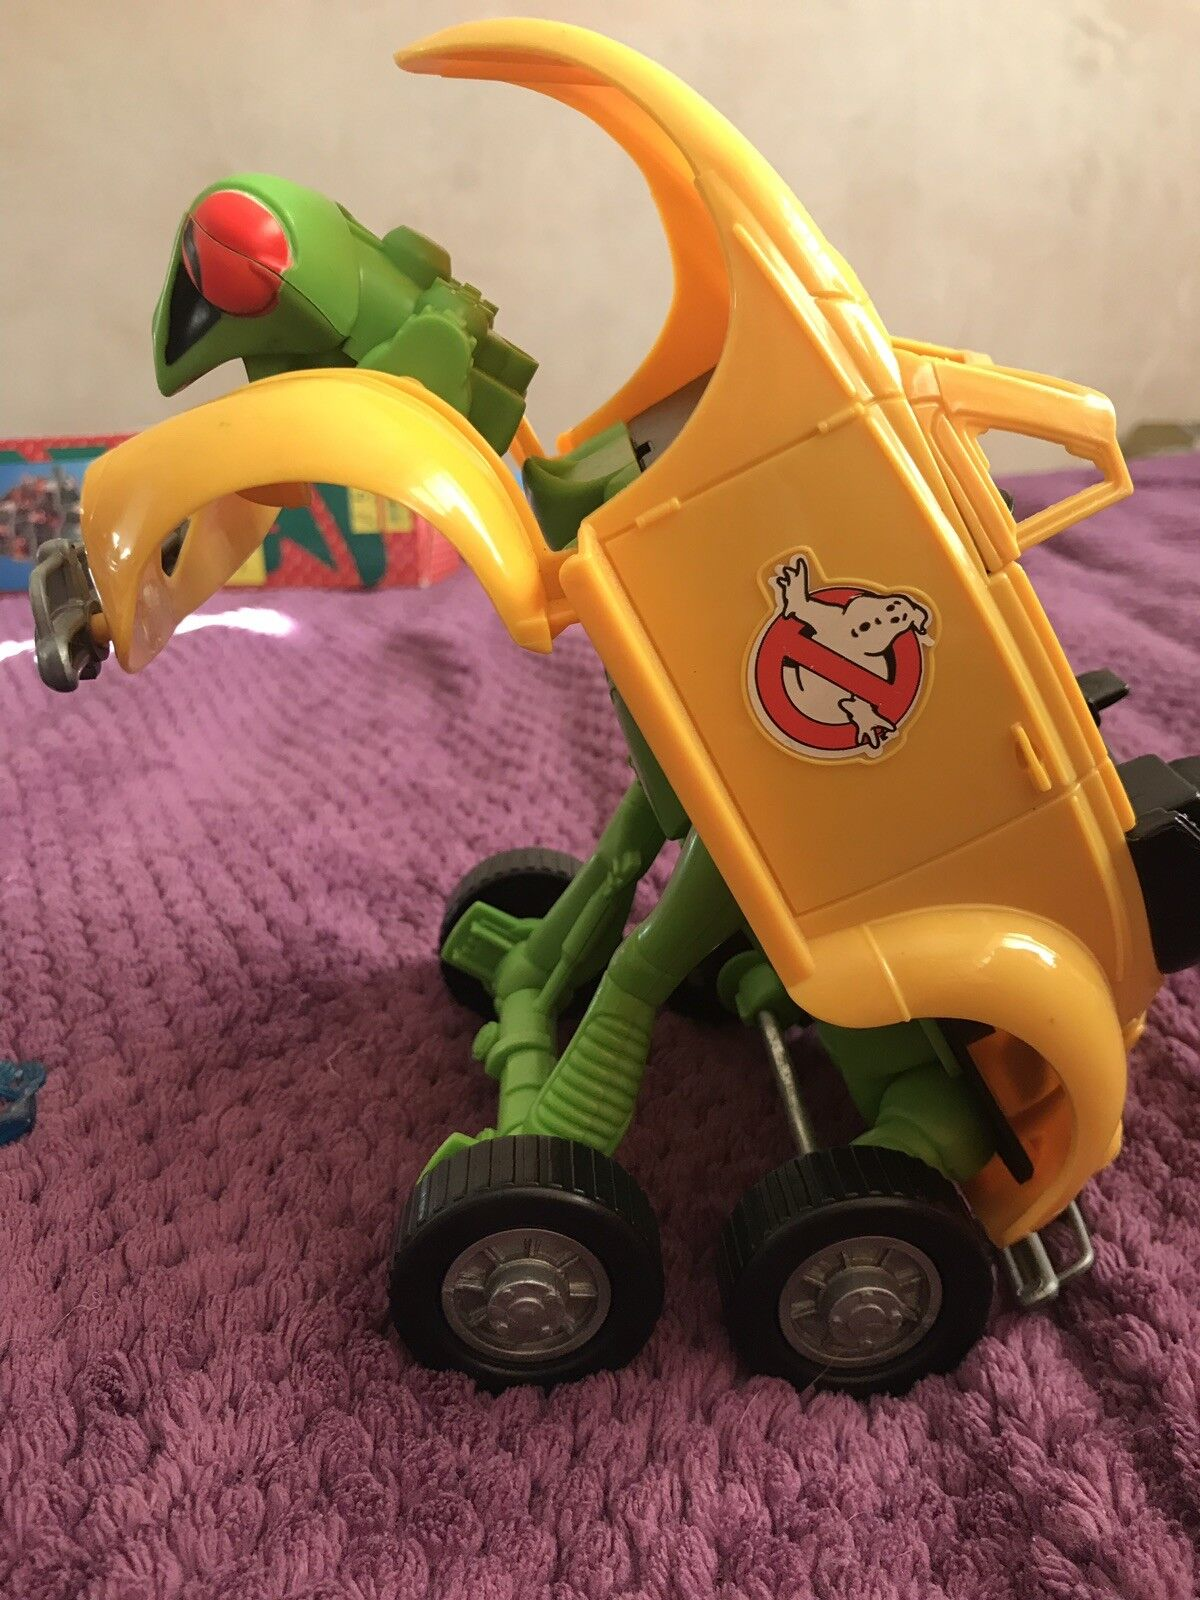 Vintage, Ghost Busters, Busters, Busters, Vw Beetle, Toy, And Other Toys, All Original 364945